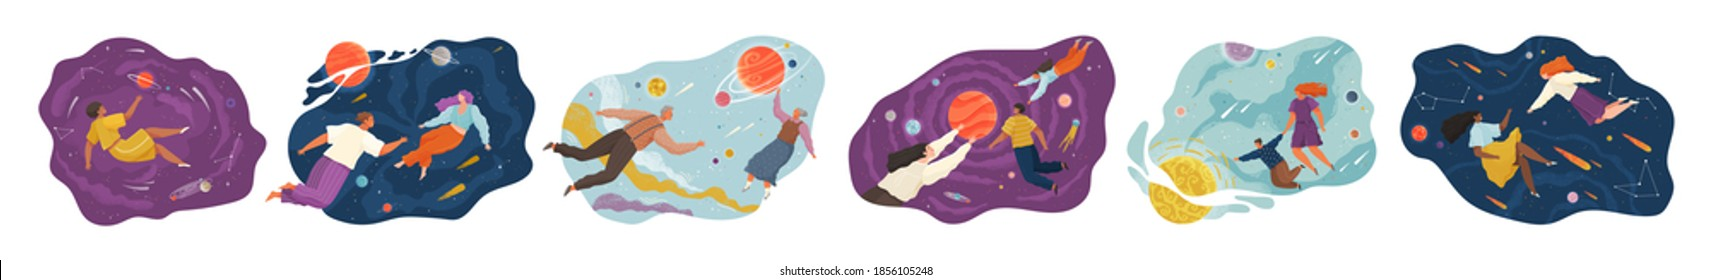 Inspired People flying in space. Collection of man and woman floating during exploration. New user experience, horizons and discoveries, worlds. Moving and floating in dreams, imagination inspiration